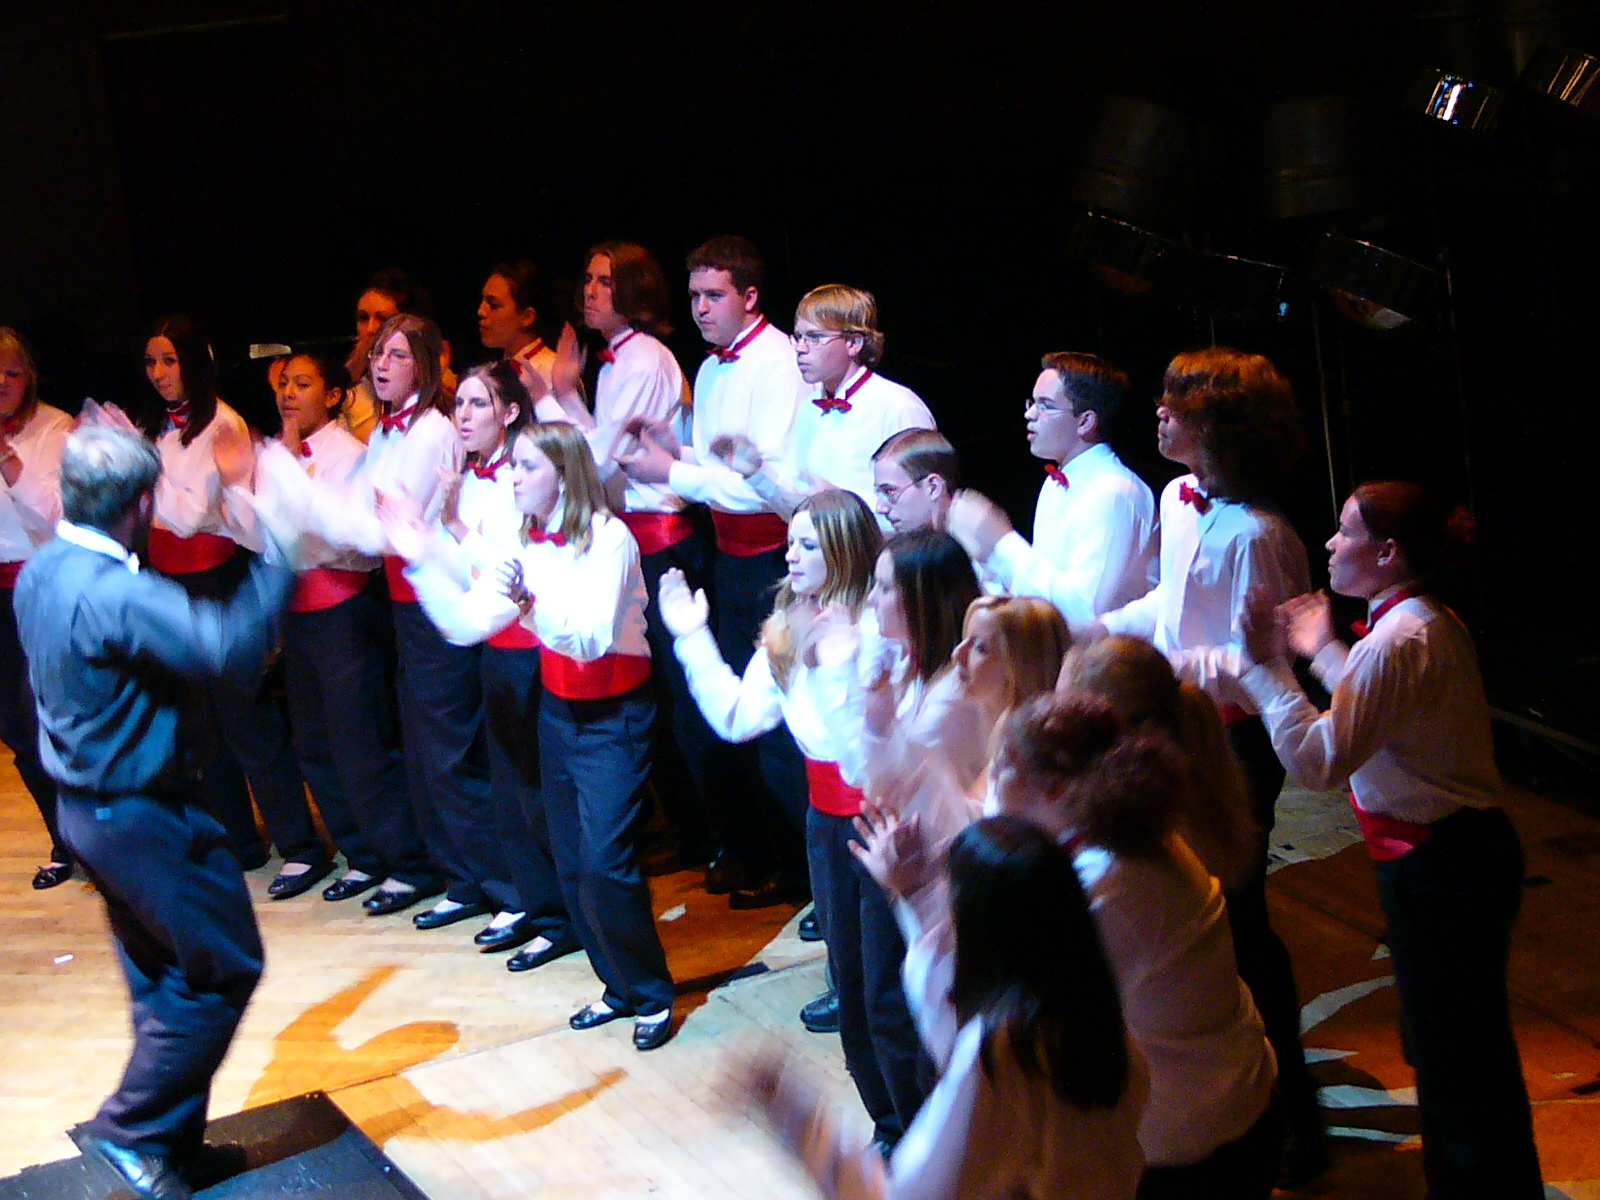 Our final performance at the festival for an audience of over 1200 people. The choir was fantastic!